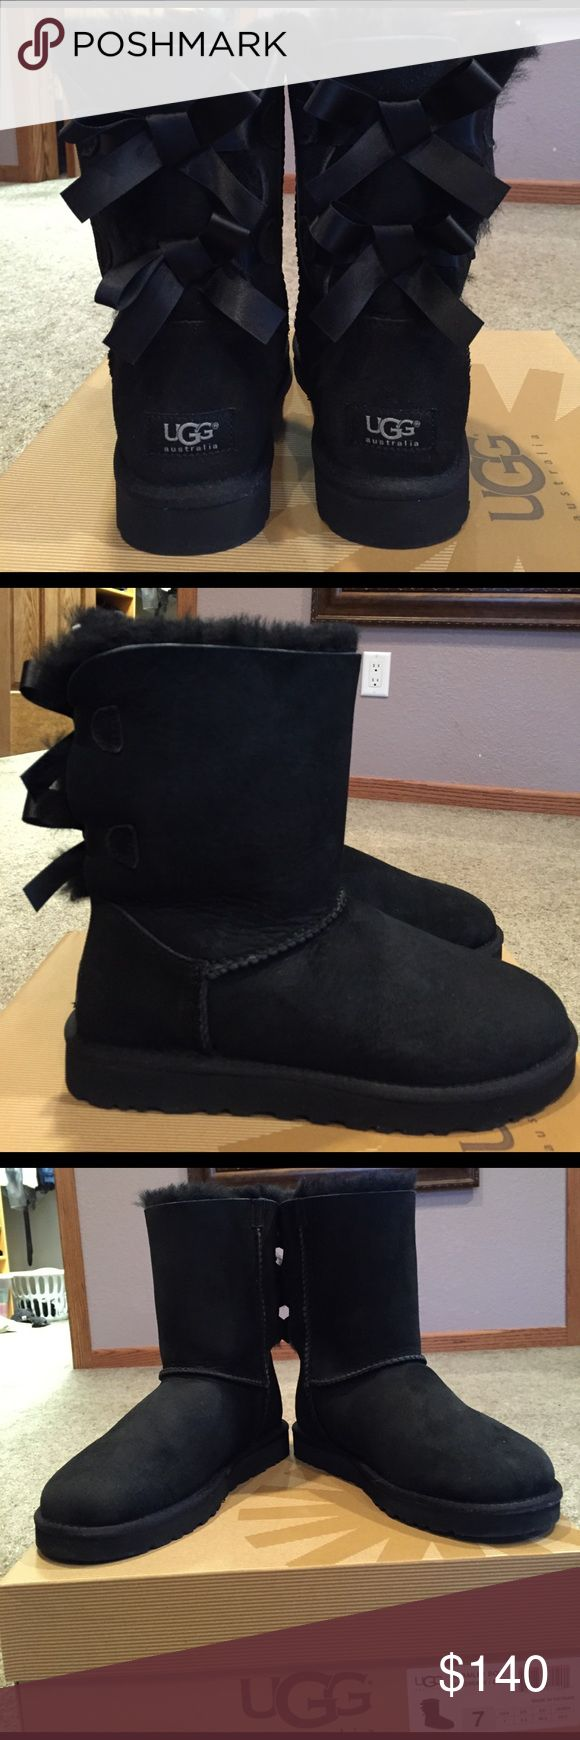 New UGG Bailey Bow Boots Have been sprayed with UGG sheepskin protector. Worn for about an hr only. UGG Shoes Winter & Rain Boots